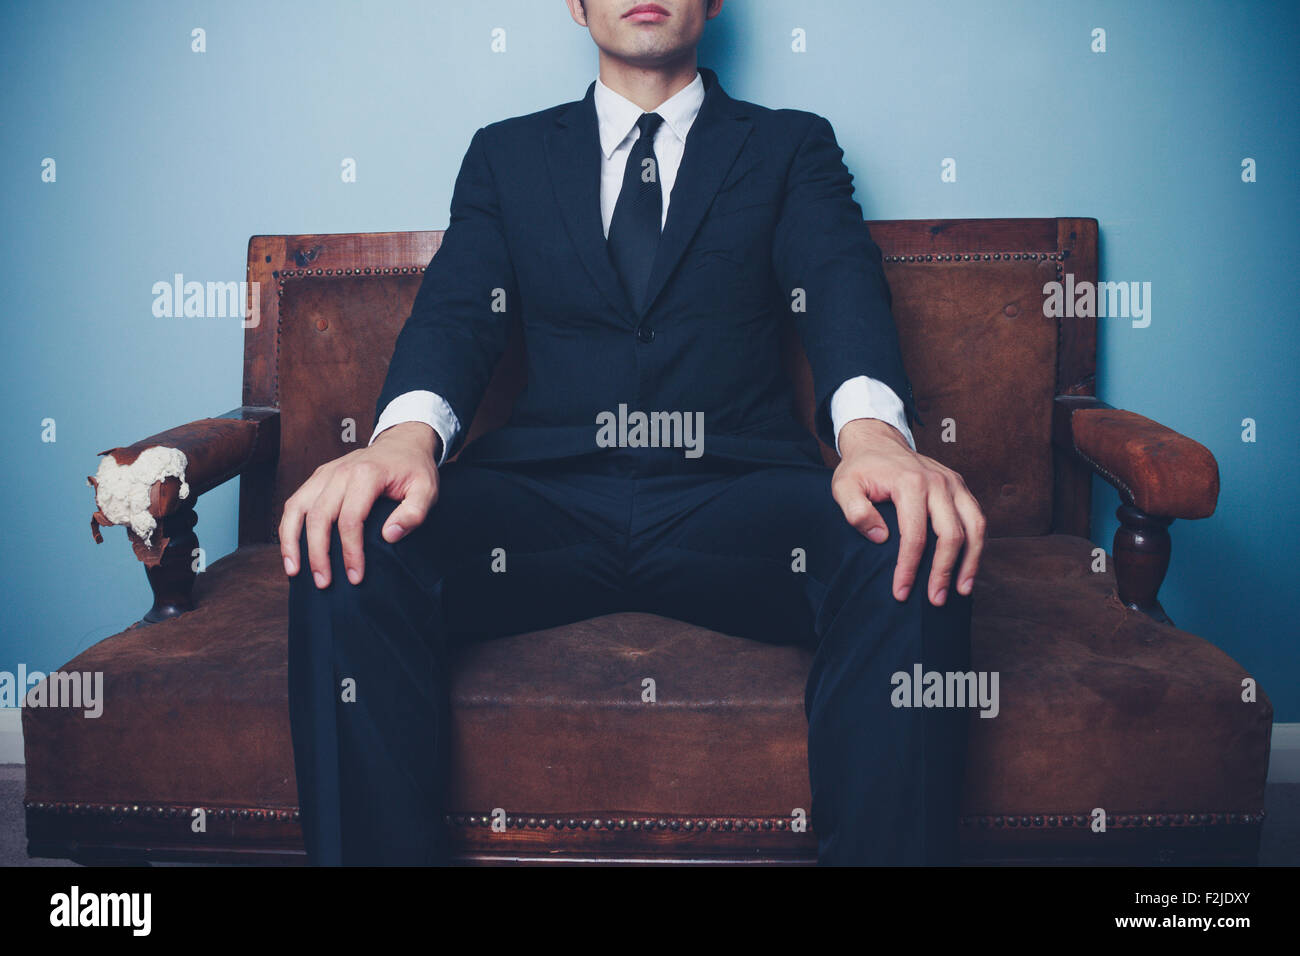 Young businessman sitting on sofa Photo Stock